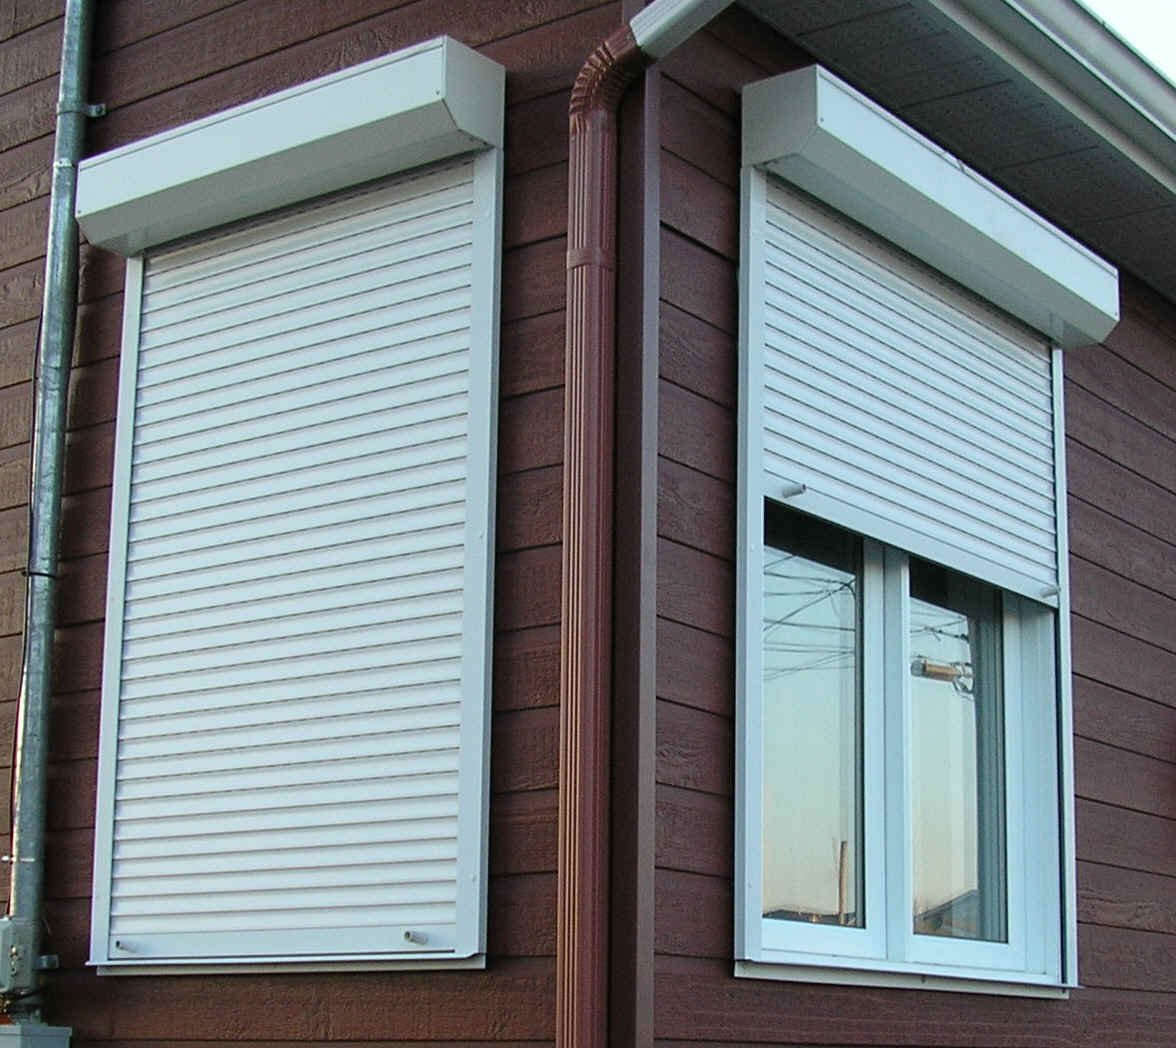 Manual Open Aluminum Shutter Window With Roller Up Rolling Windows Buy Shutters Window Roller Shutter For Windows Manual Open Aluminum Shutter